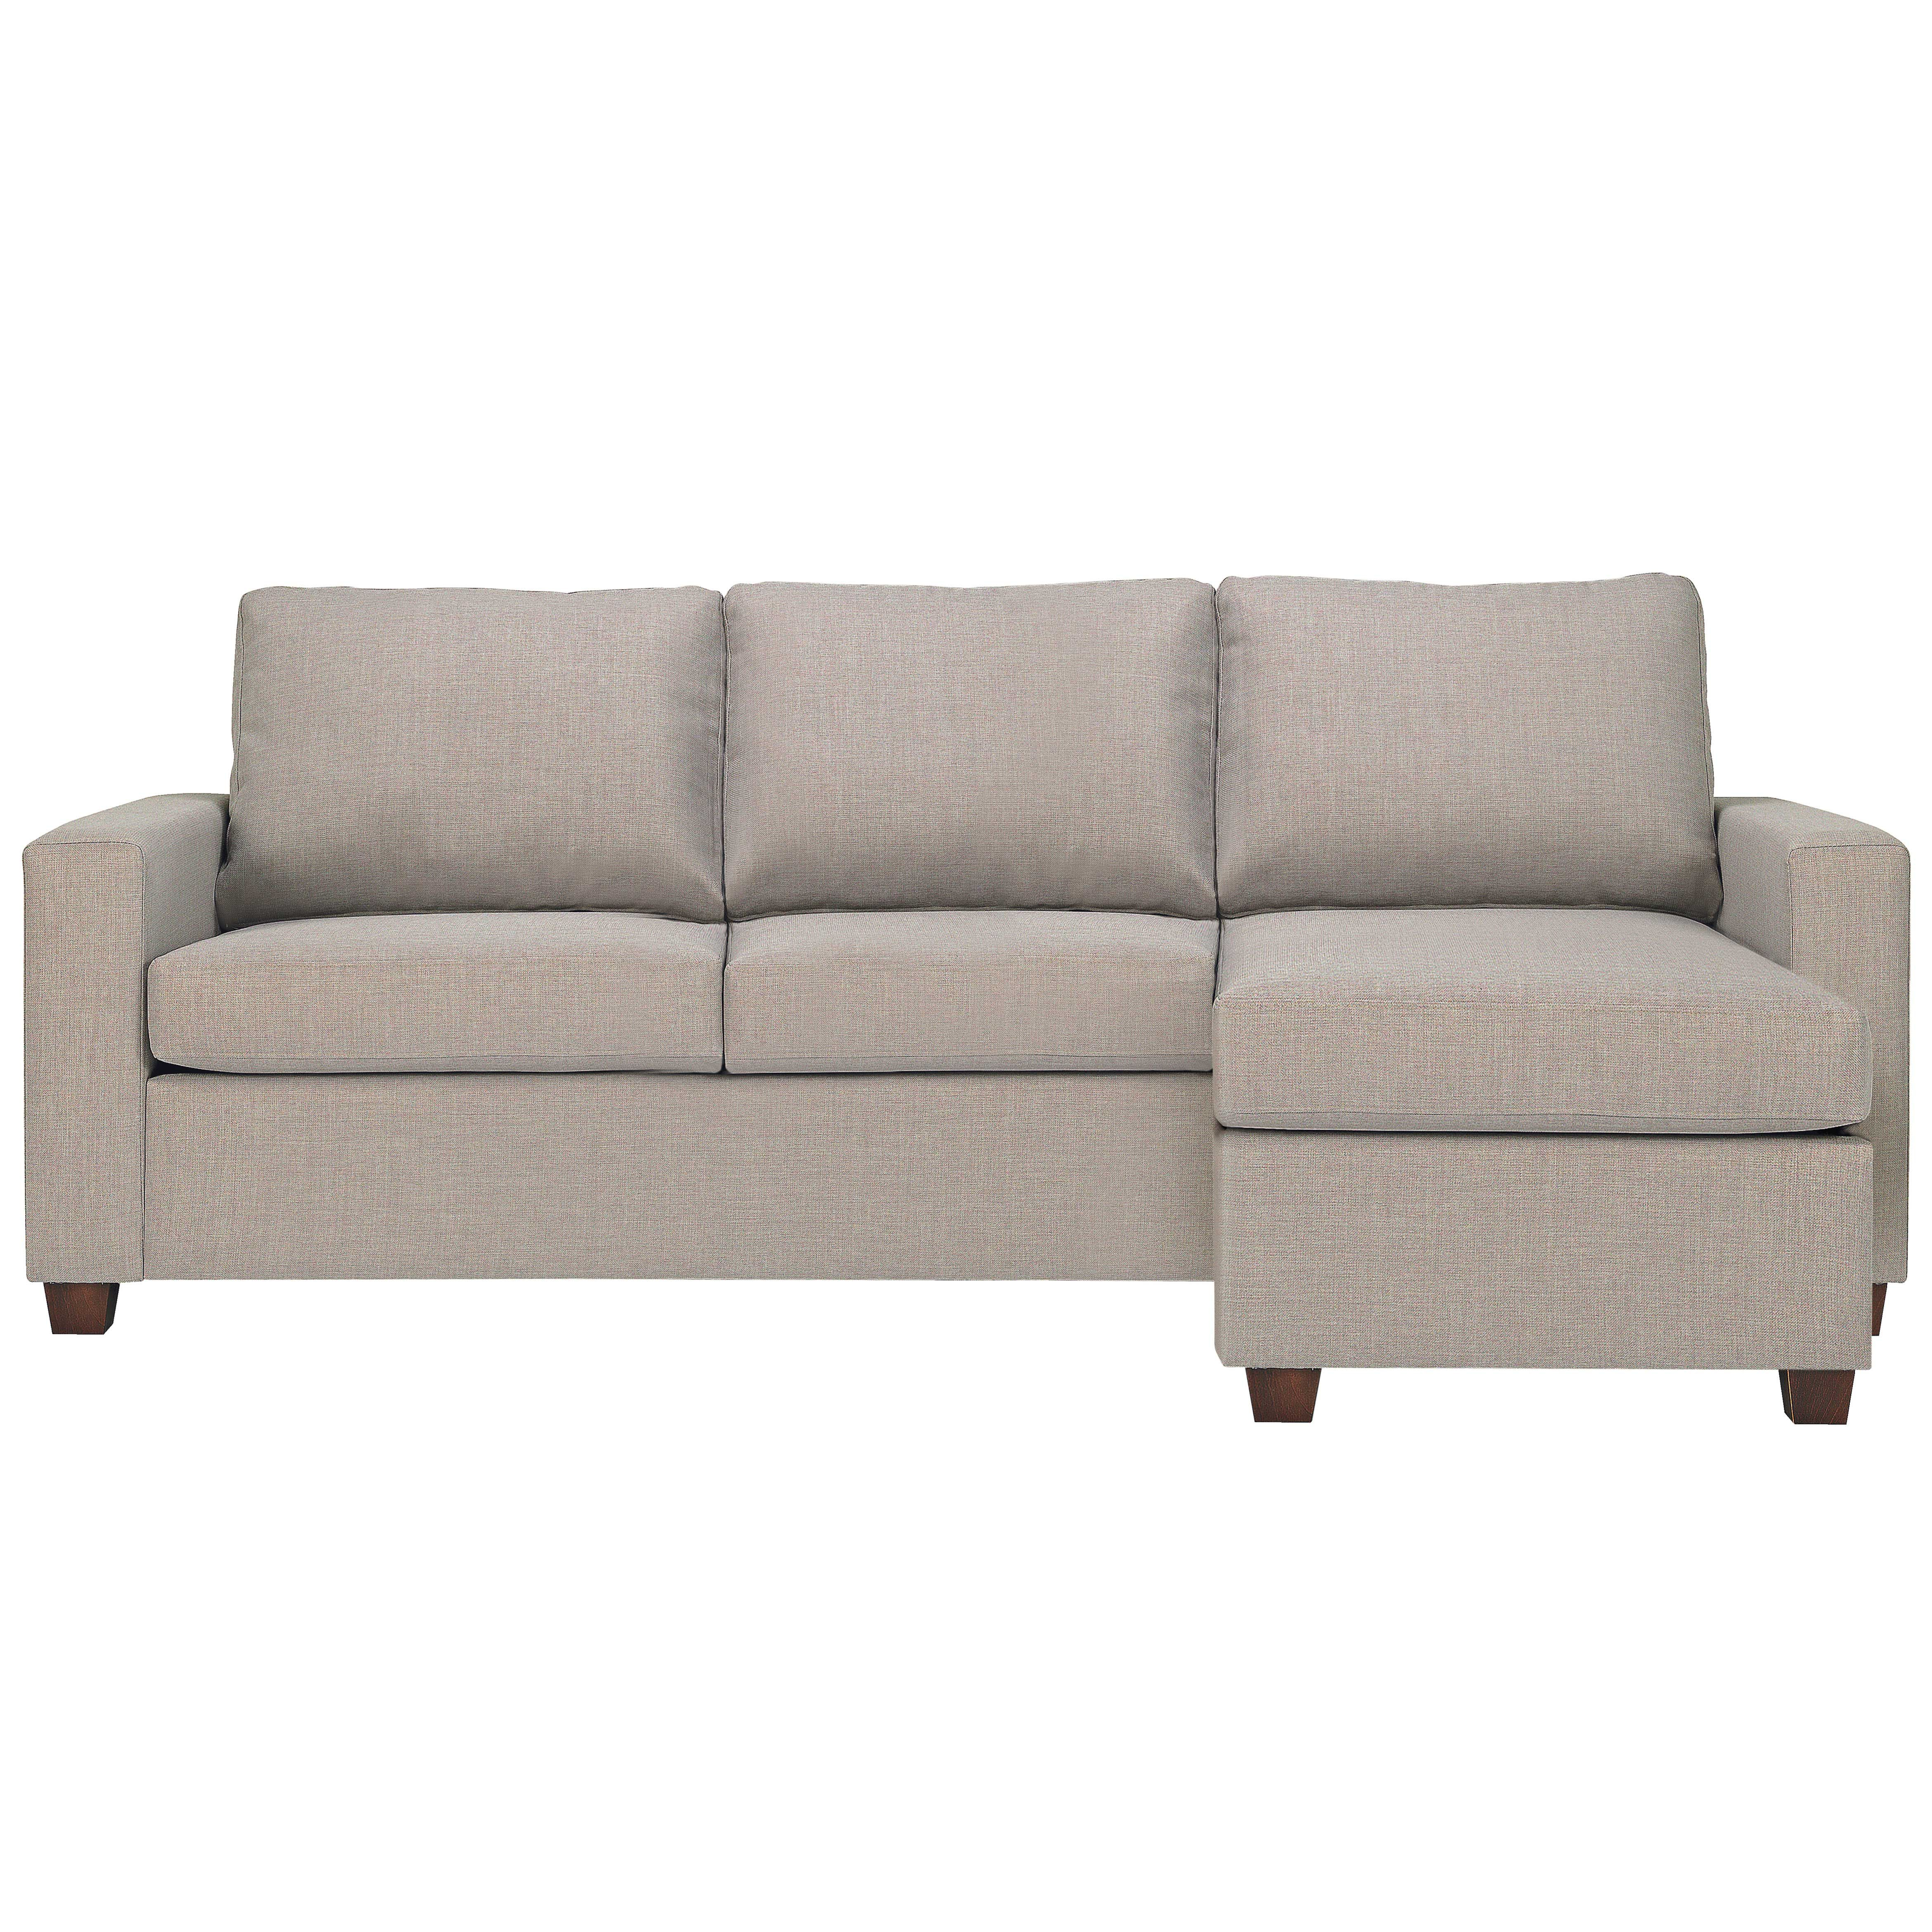 fabric queen sleeper chaise sofa charleston regency carolina table newport 3 seater 4 quot innerspring bed with